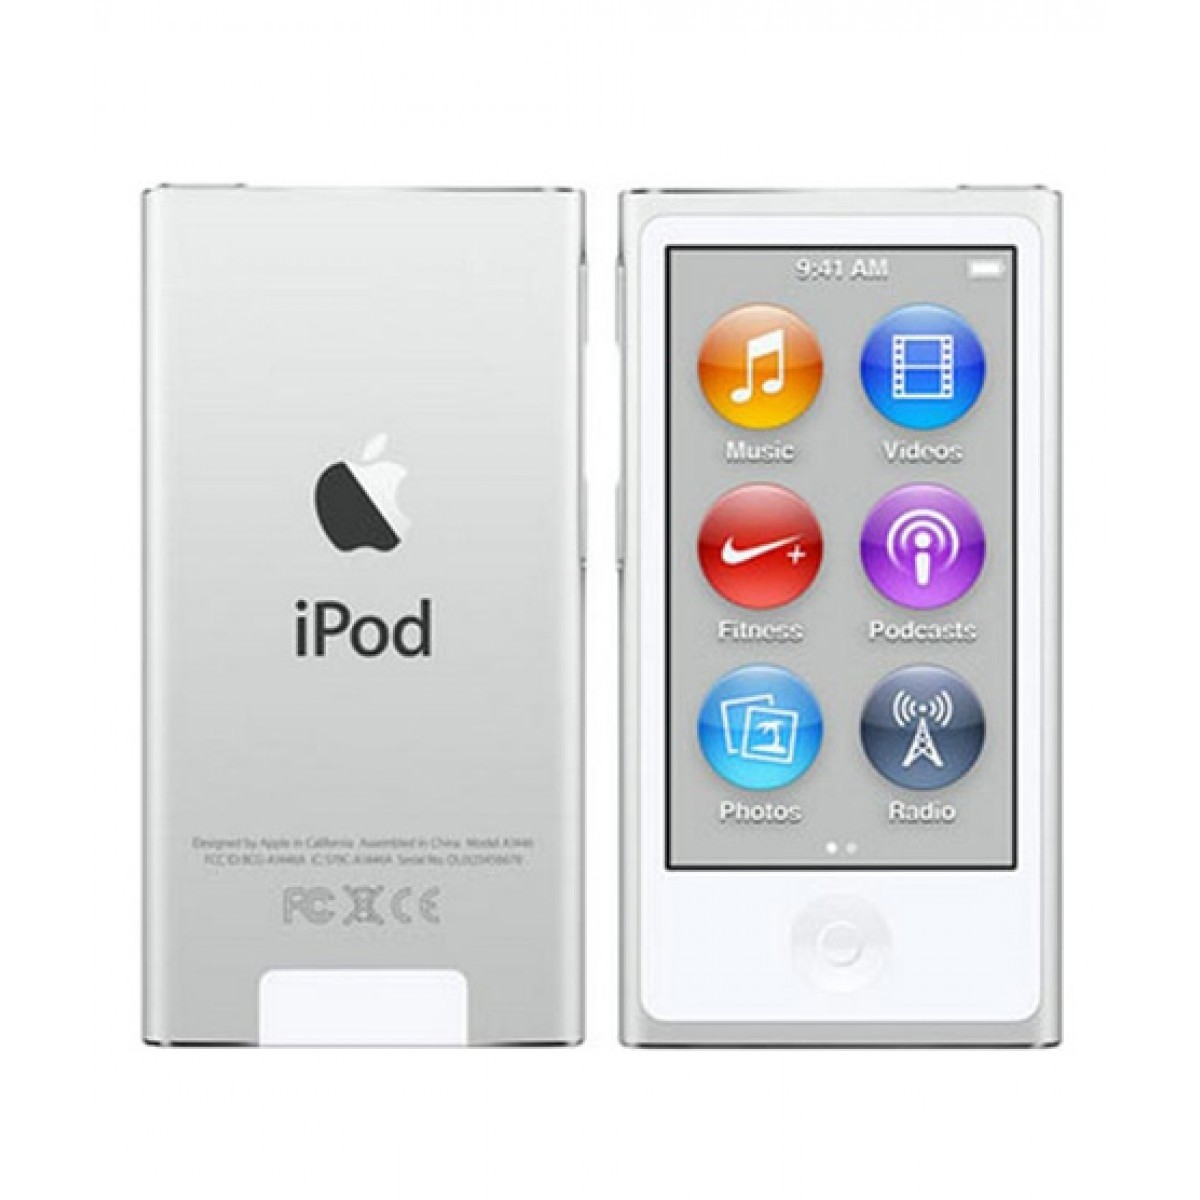 apple ipod nano 8th generation 16gb with screen. Black Bedroom Furniture Sets. Home Design Ideas